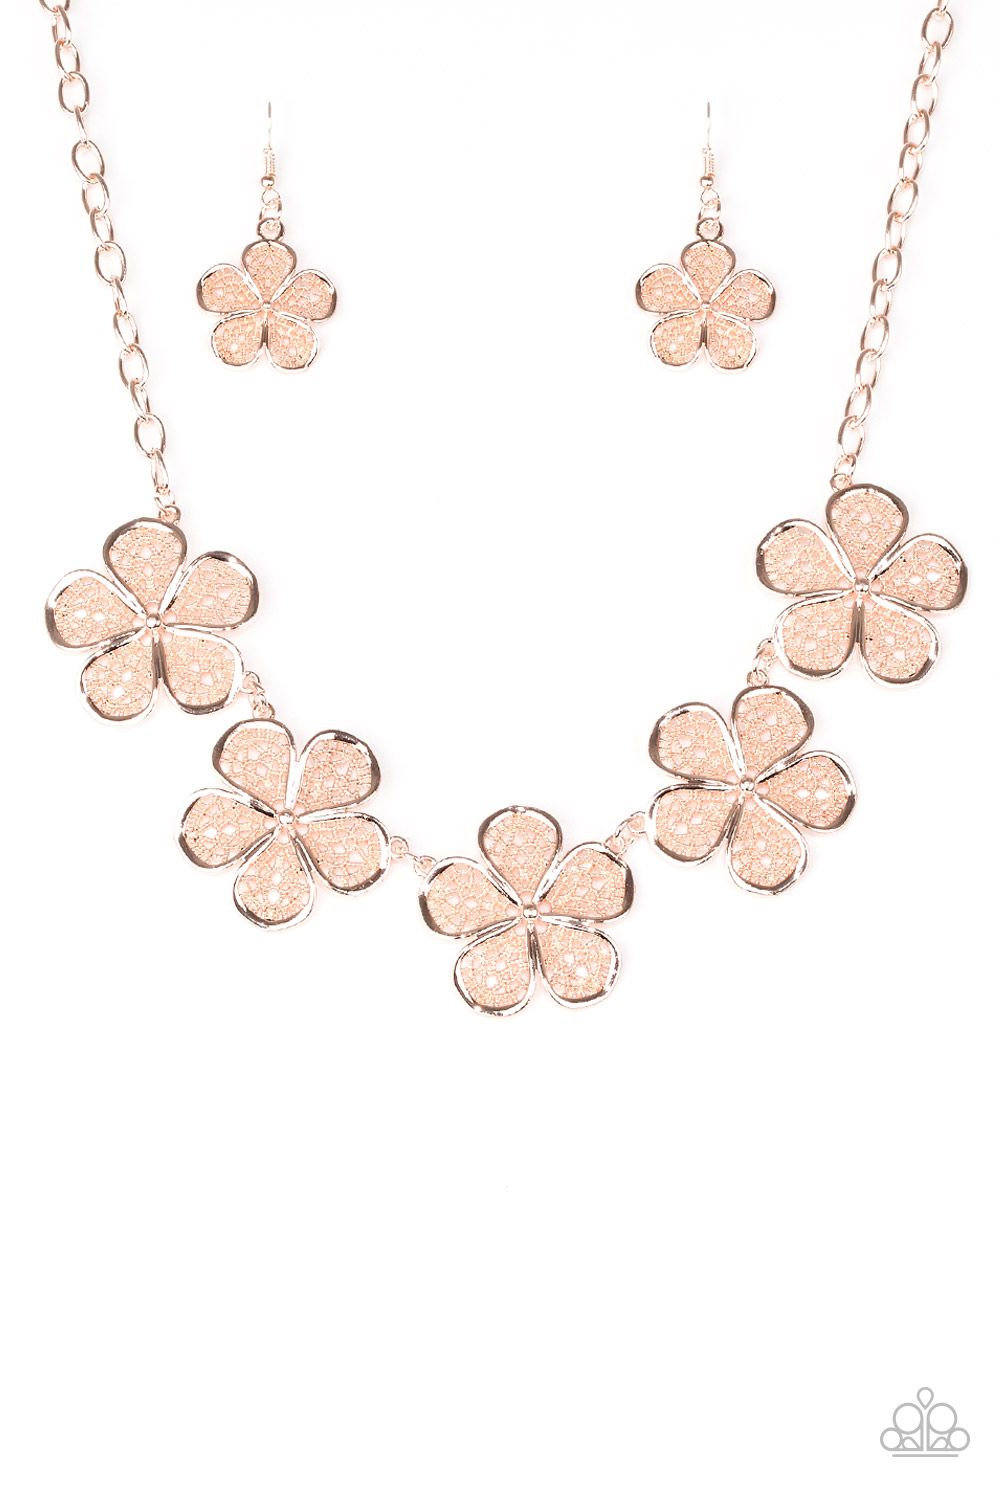 No Common Daisy Rose Gold Necklace Featuring Lace Like Petals Glistening Rose Gold Daisies Link Be Rose Gold Druzy Earrings Gold Necklace Set Gold Necklace